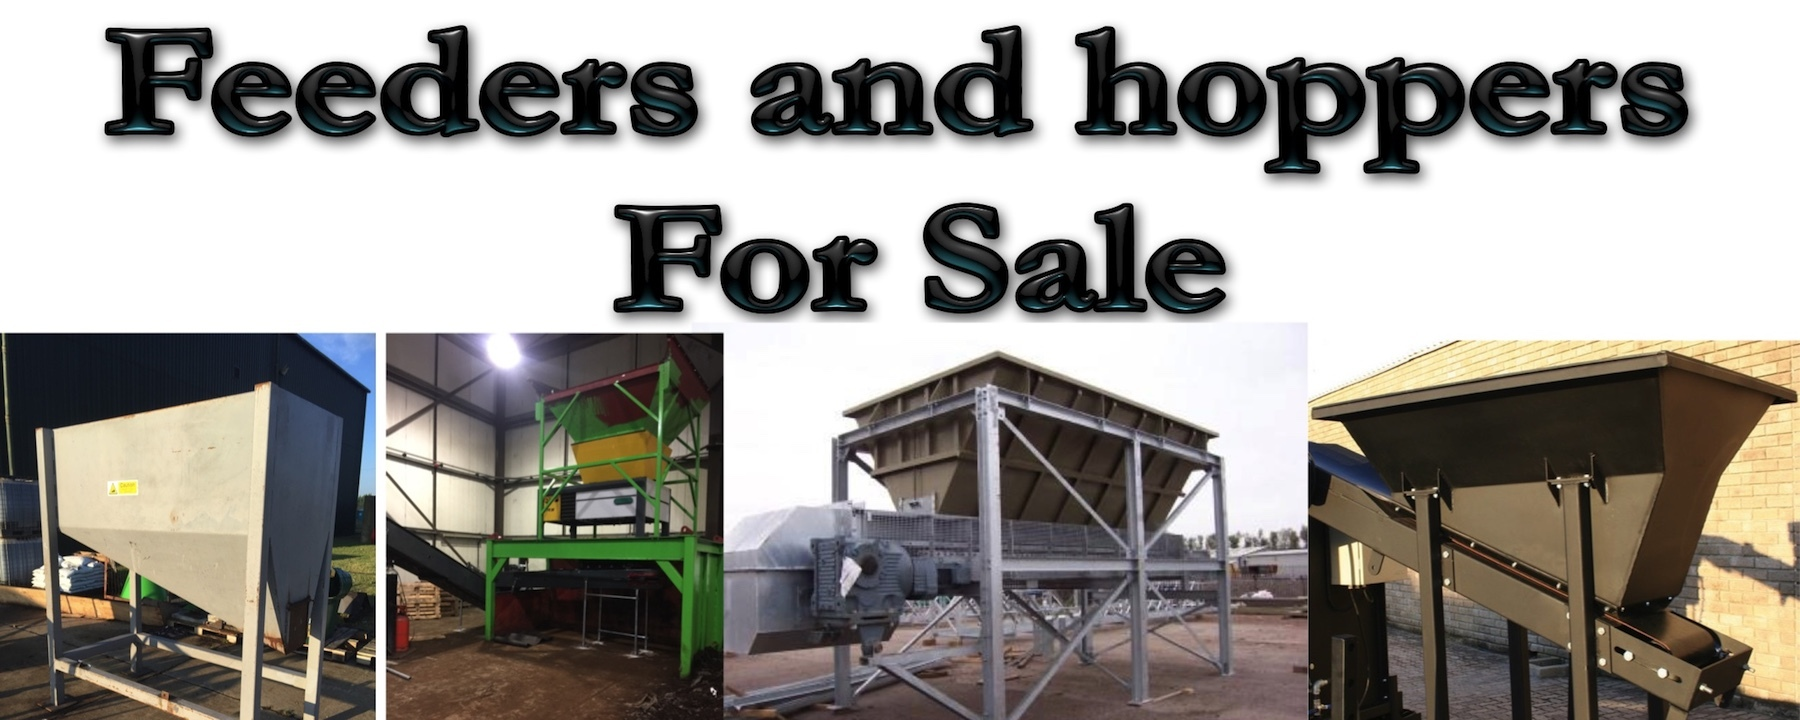 feeders_and_hoppers_for_sale_